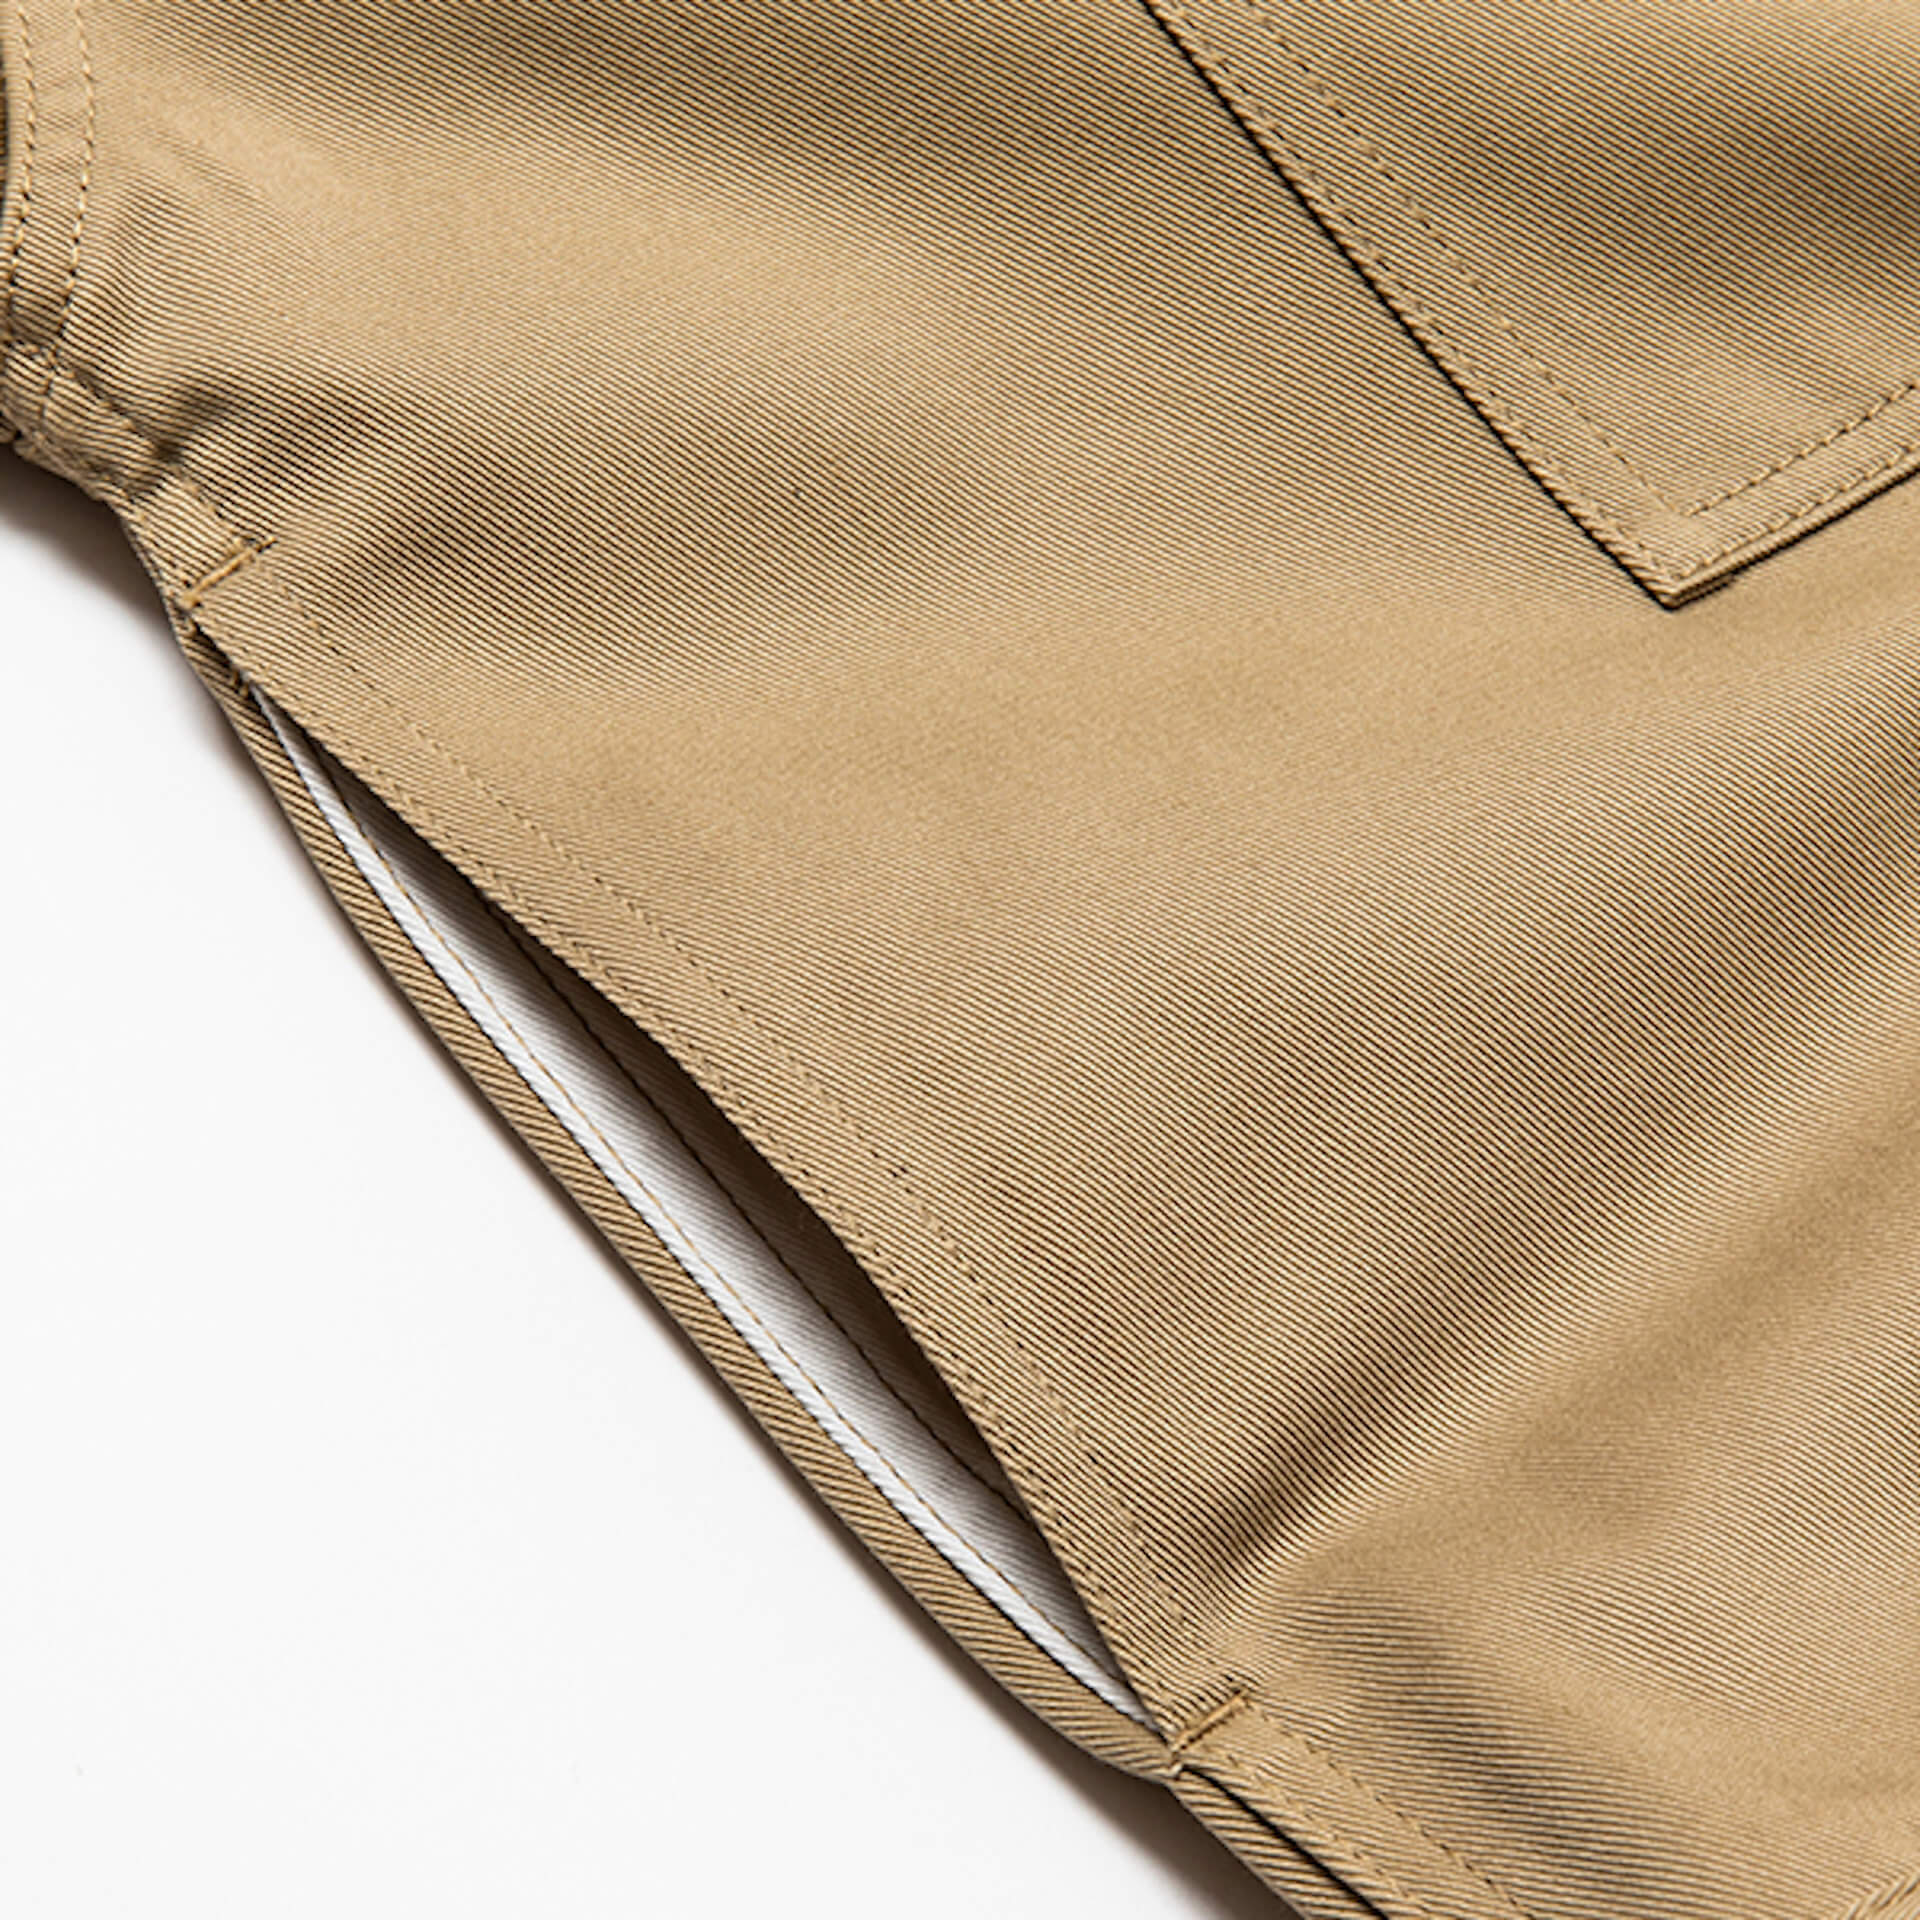 meanswhileとDickiesコラボ第2弾!定番素材を使用したセットアップが登場 life_fashion210901_meanswhile_6